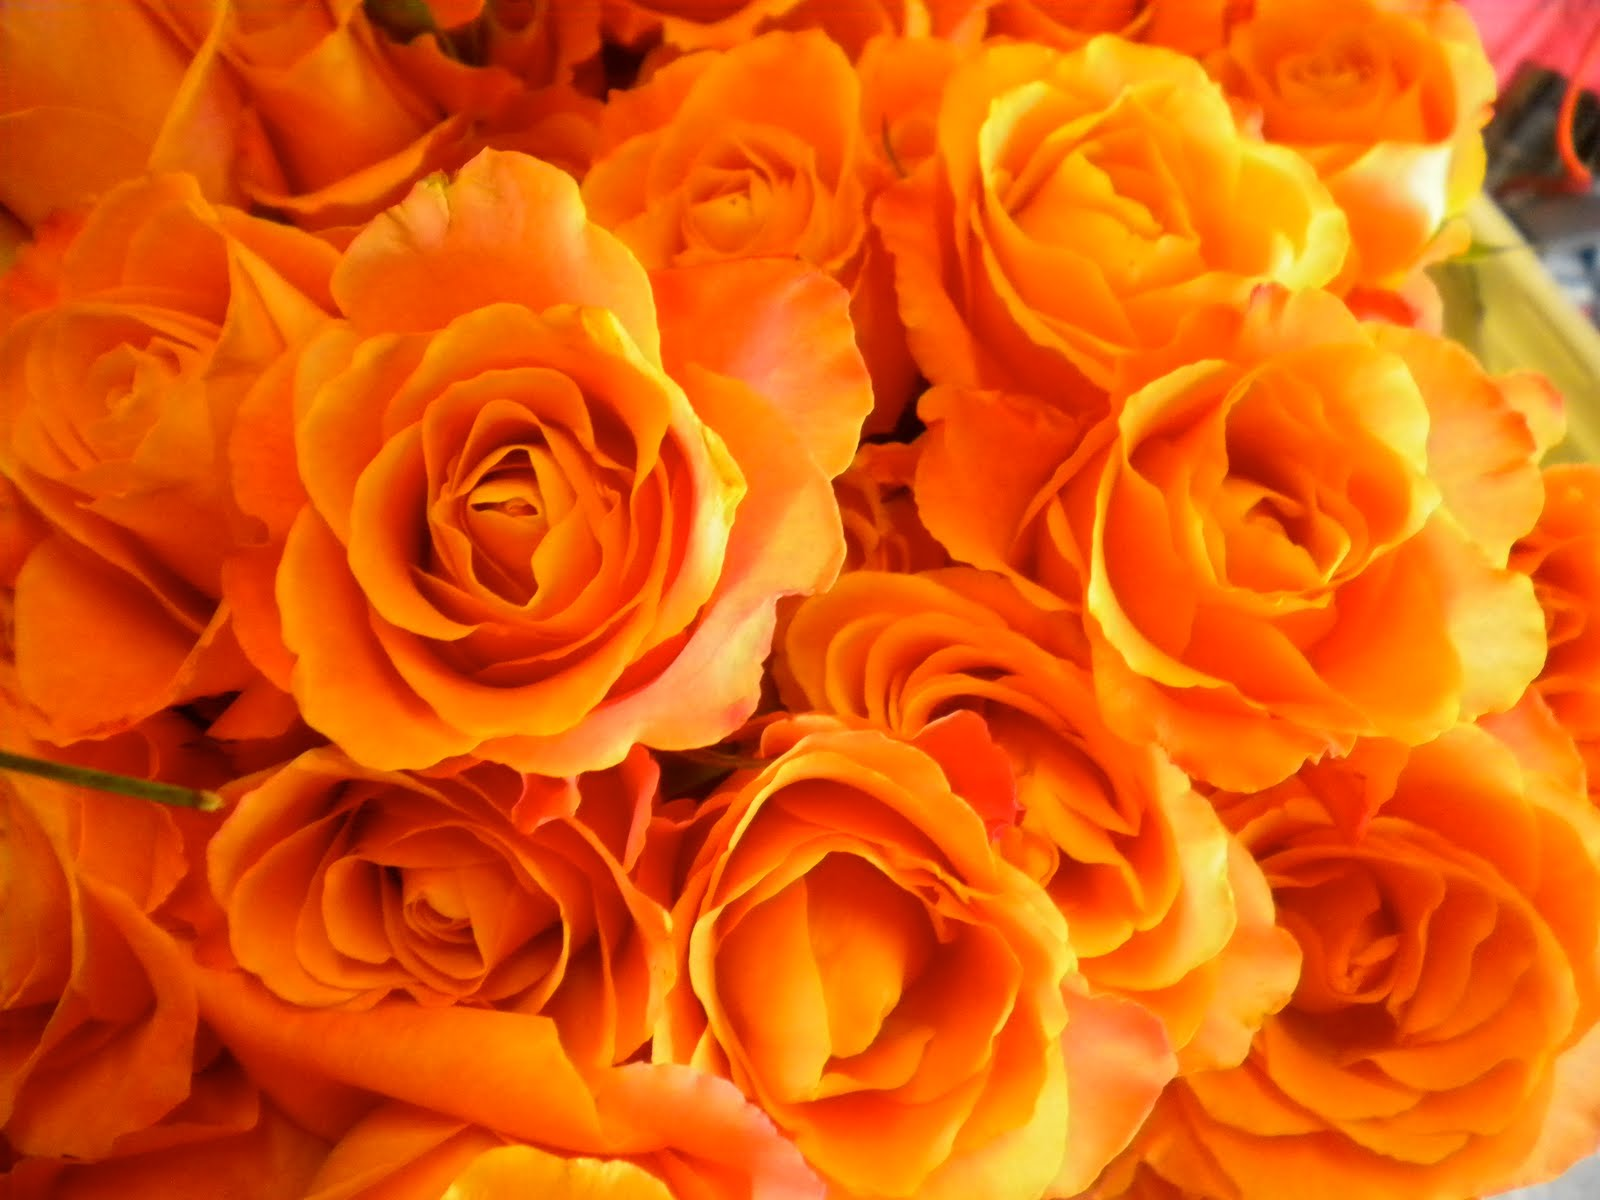 Random Interesting Topics and Photos: Meaning of rose colors